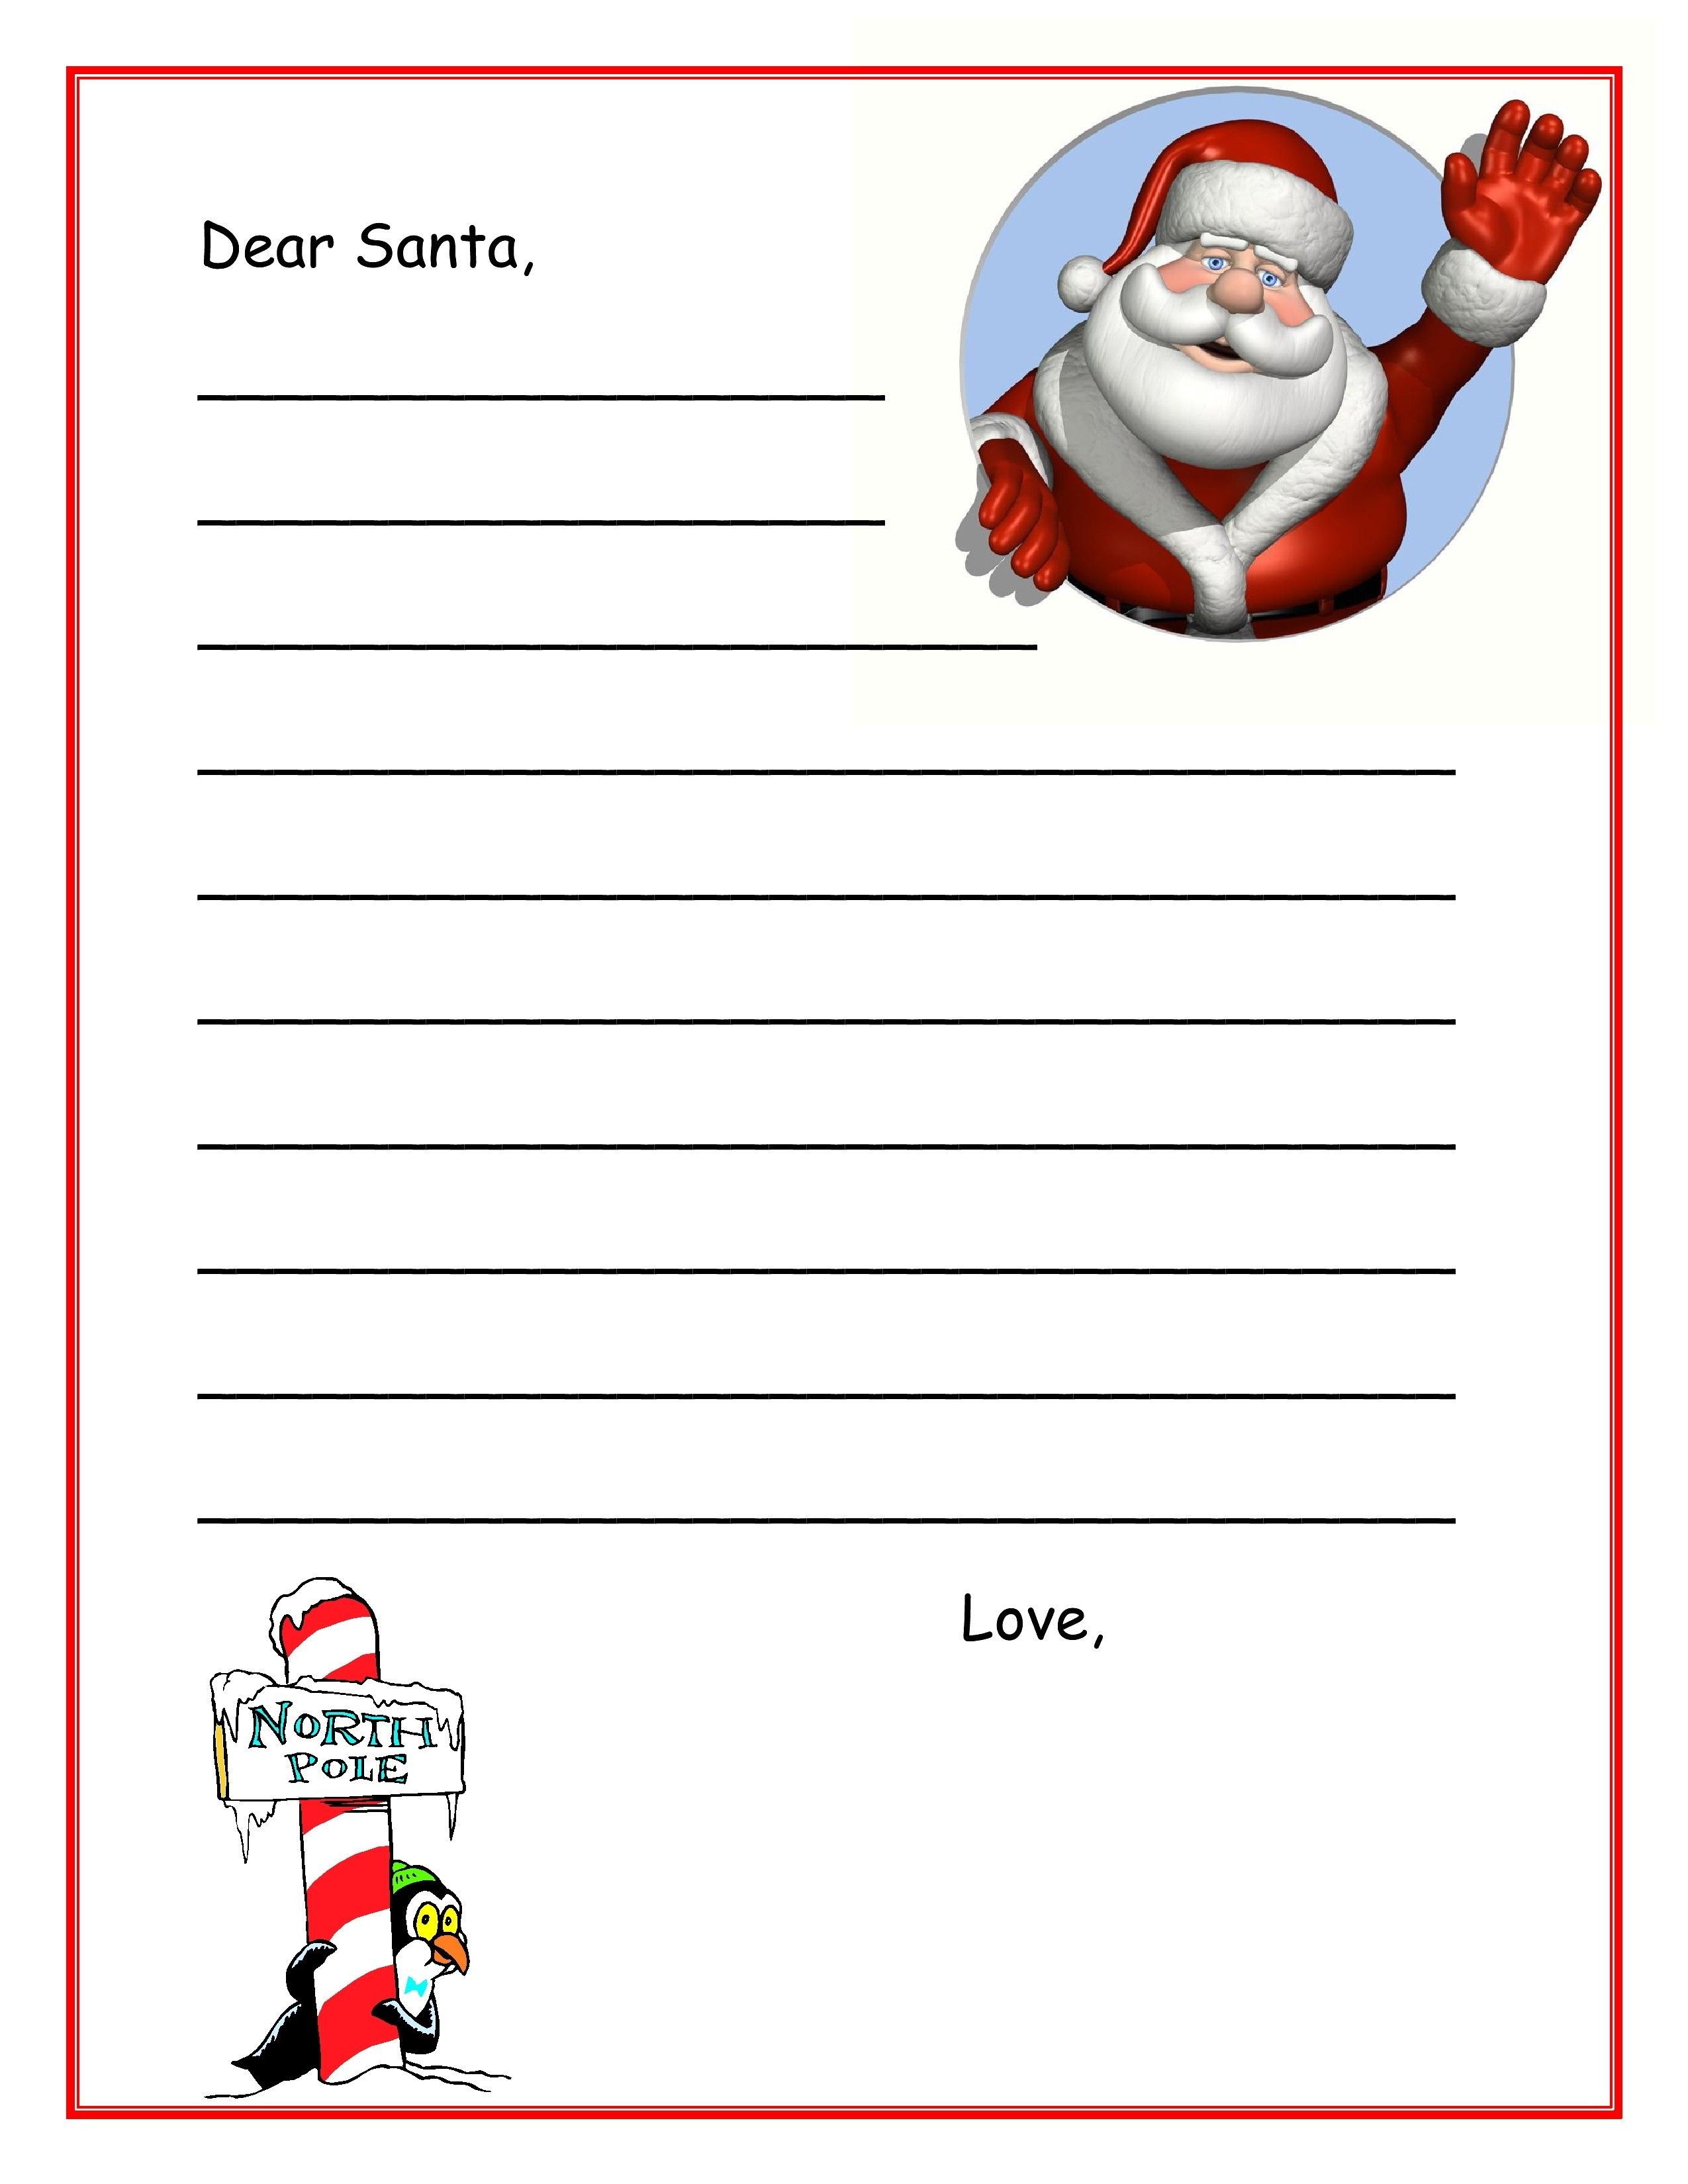 Free Dear Santa Letter Template Download | Posters For The Walls - Free Printable Dear Santa Stationary